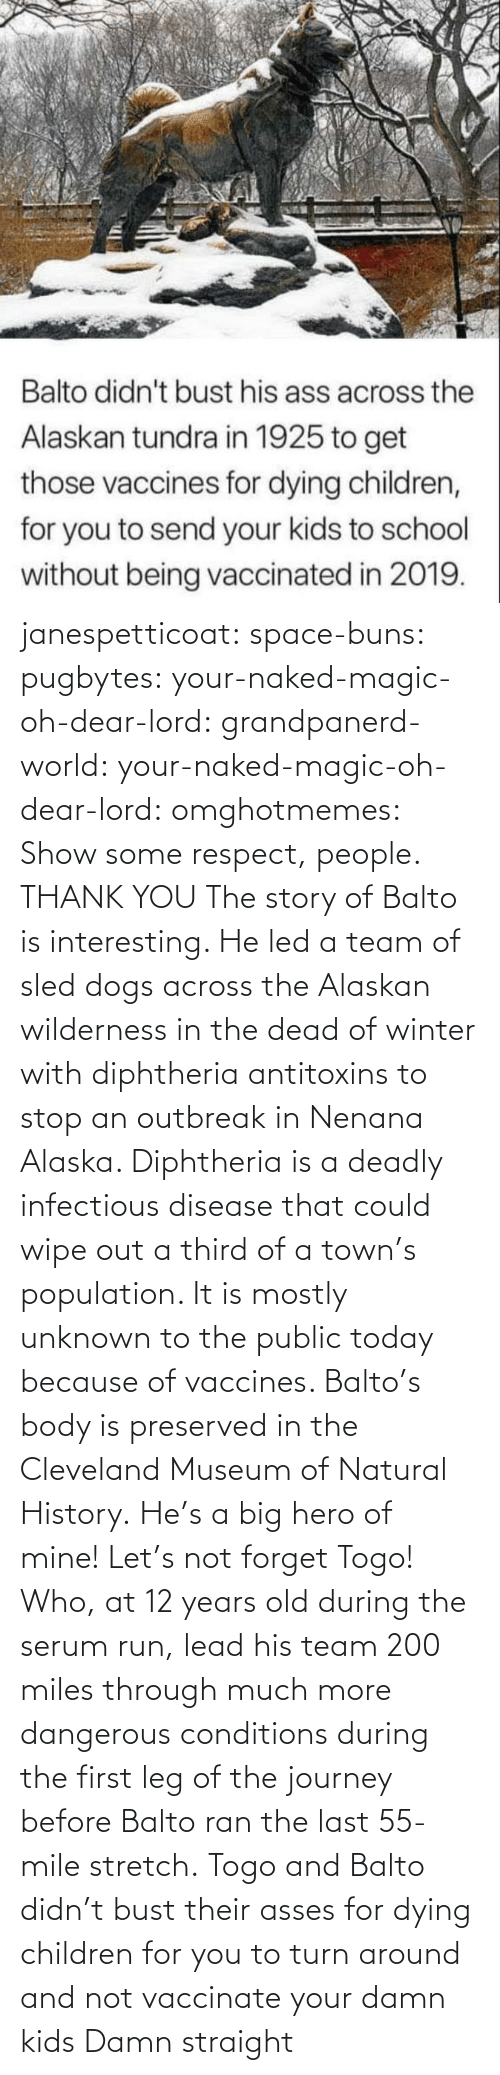 Years Old: janespetticoat: space-buns:  pugbytes:   your-naked-magic-oh-dear-lord:  grandpanerd-world:   your-naked-magic-oh-dear-lord:  omghotmemes: Show some respect, people.  THANK YOU   The story of Balto is interesting. He led a team of sled dogs across the Alaskan wilderness in the dead of winter with diphtheria antitoxins to stop an outbreak in Nenana Alaska. Diphtheria is a deadly infectious disease that could wipe out a third of a town's population. It is mostly unknown to the public today because of vaccines. Balto's body is preserved in the Cleveland Museum of Natural History.   He's a big hero of mine!   Let's not forget Togo! Who, at 12 years old during the serum run, lead his team 200 miles through much more dangerous conditions during the first leg of the journey before Balto ran the last 55-mile stretch.   Togo and Balto didn't bust their asses for dying children for you to turn around and not vaccinate your damn kids    Damn straight